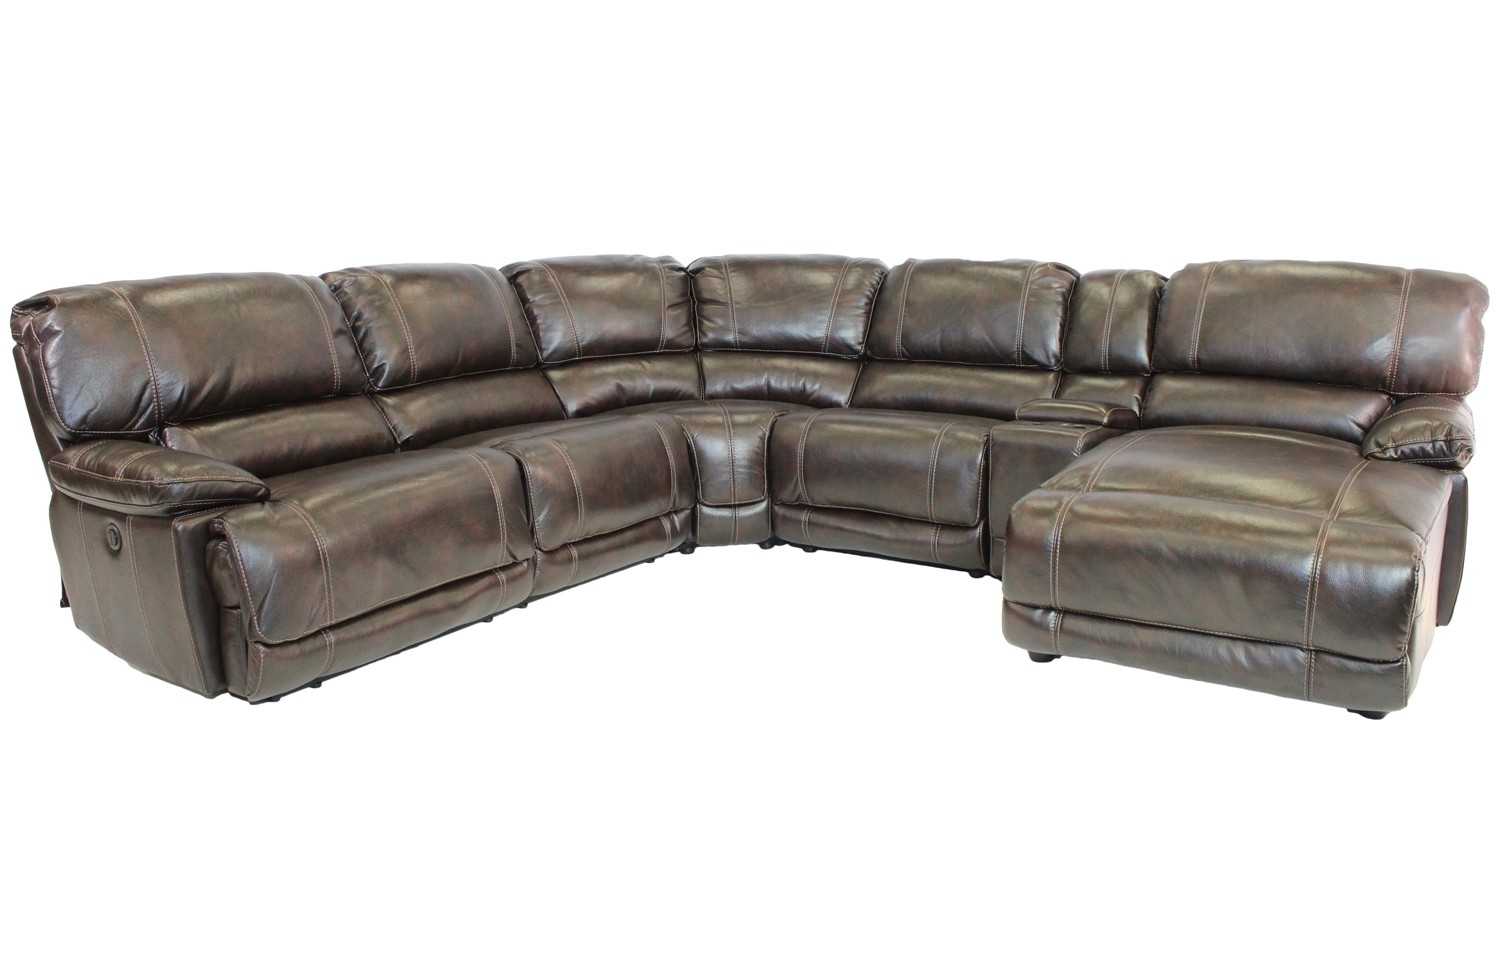 Sectional Sofas | Save Mor Online And In-Store intended for Marcus Chocolate 6 Piece Sectionals With Power Headrest And Usb (Image 20 of 30)